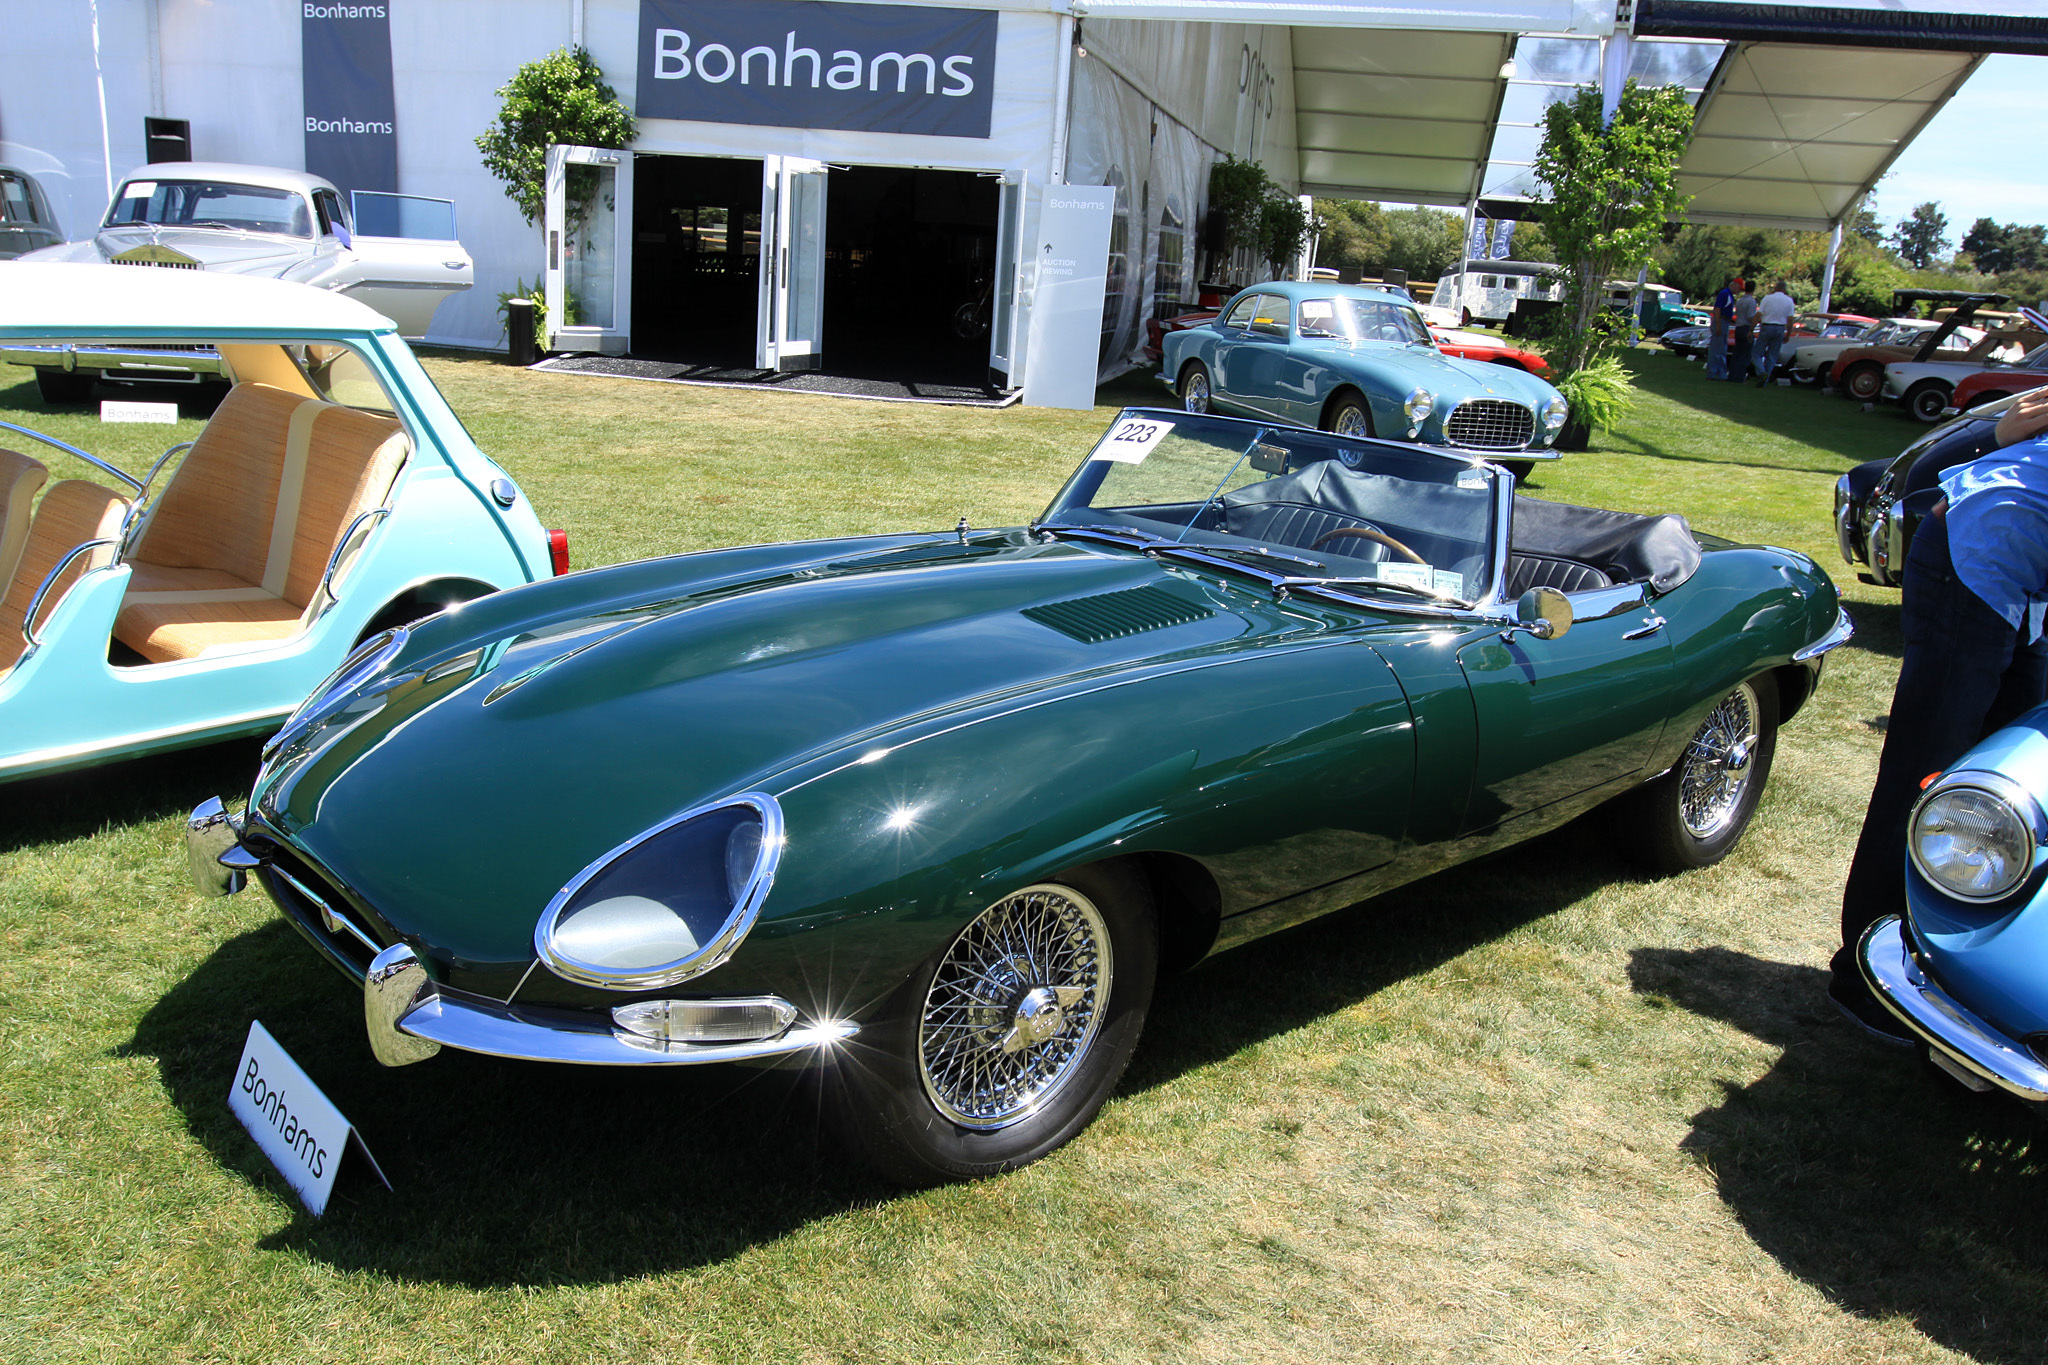 1967 Jaguar E-Type 4.2 Roadster 1E14542 - sold for $167,200 at Bonhams. Matching numbers example. Beautifully restored. Complete with books and tools. Over $26,000 in recent receipts. Offered with history file and Heritage Trust Certificate.